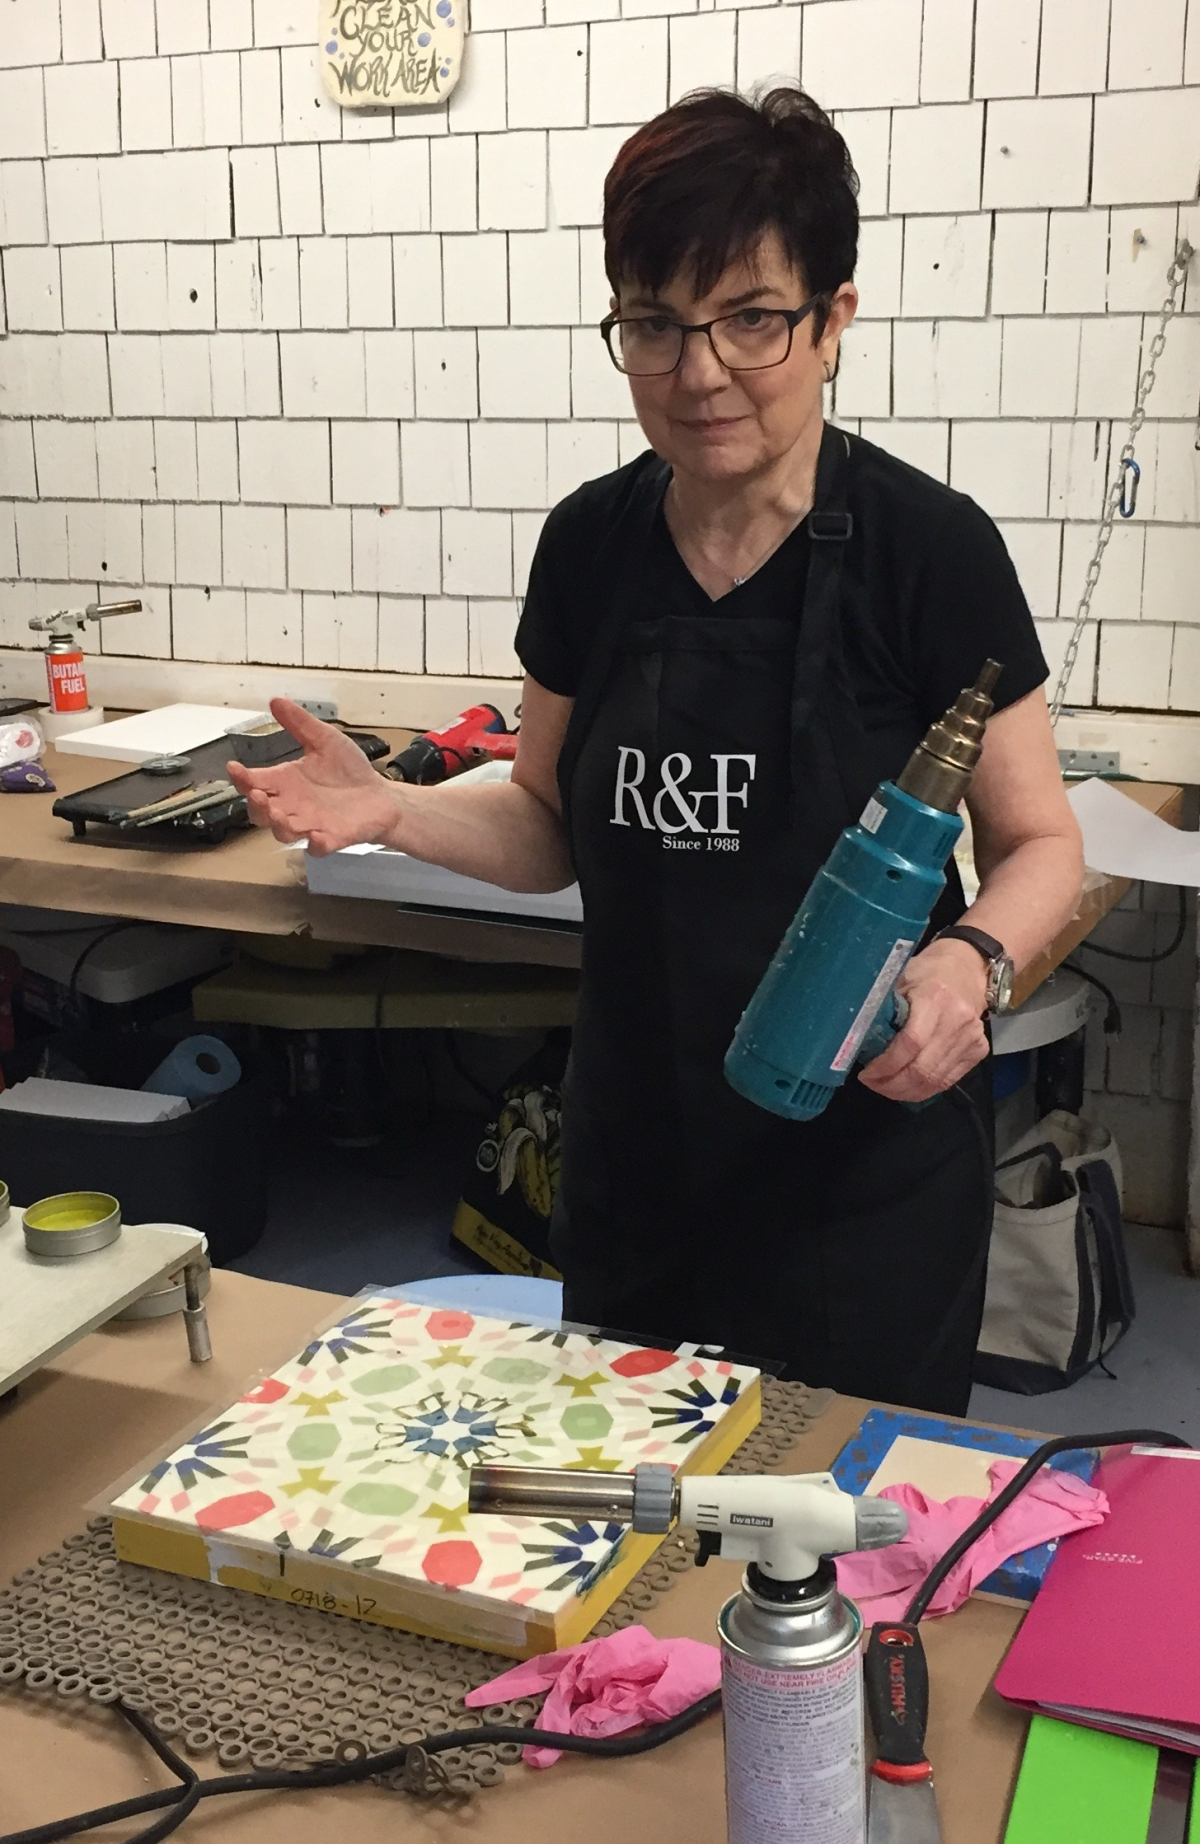 Final Day at the International Encaustic Conference and a Post Conference Workshop with Karen Freedman: